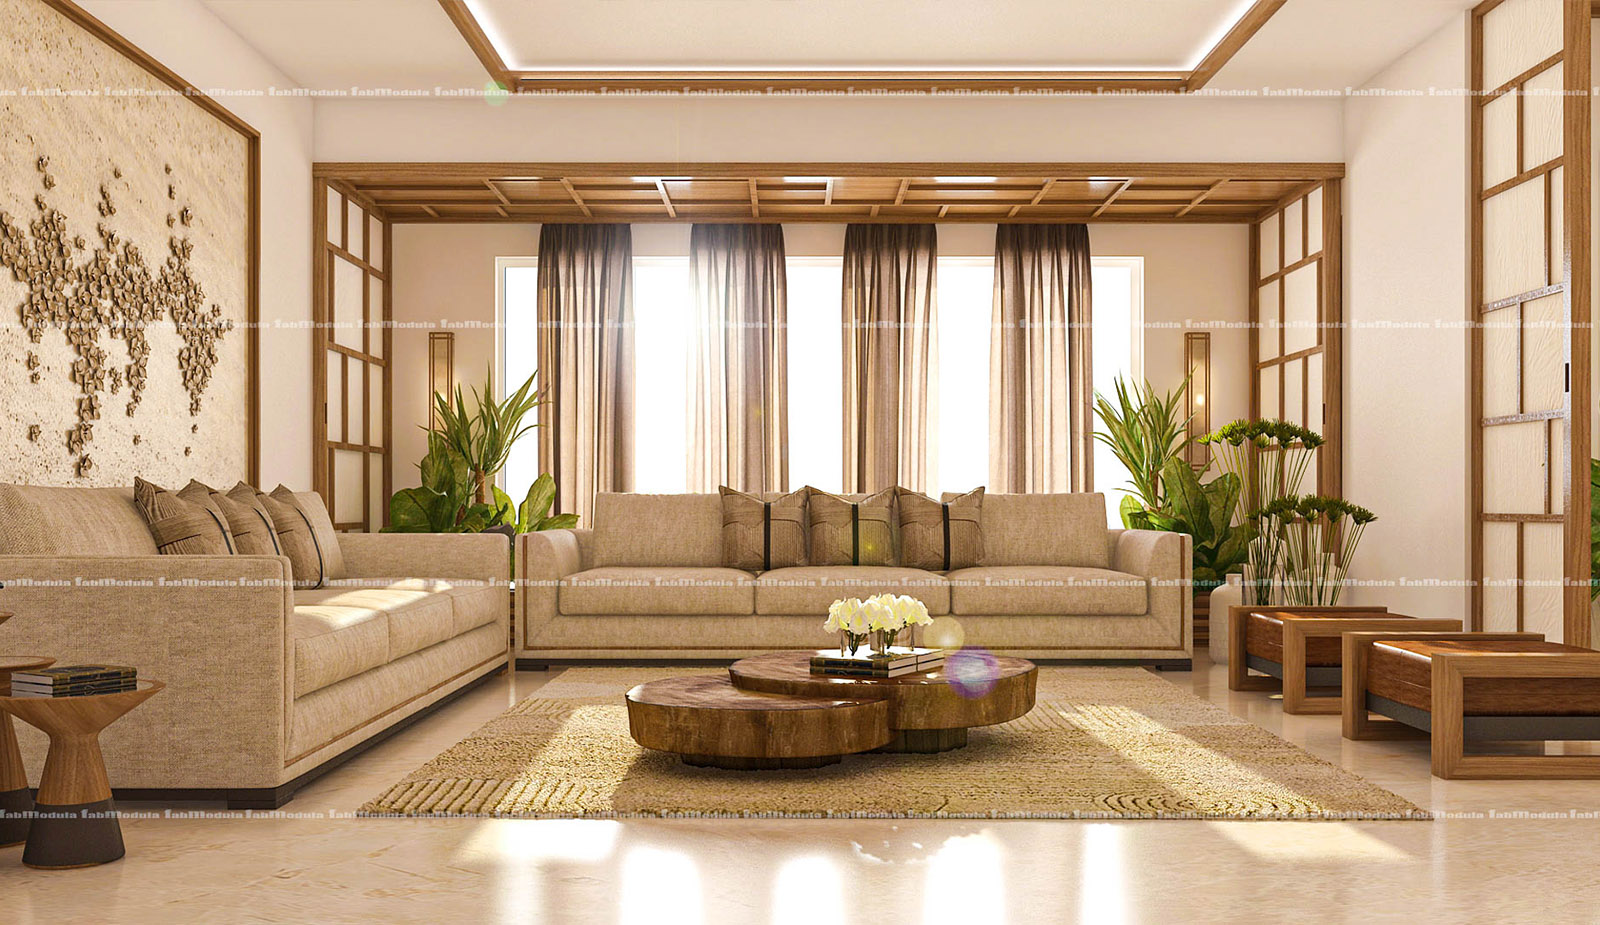 Why Interior Designers Charge High Fees?